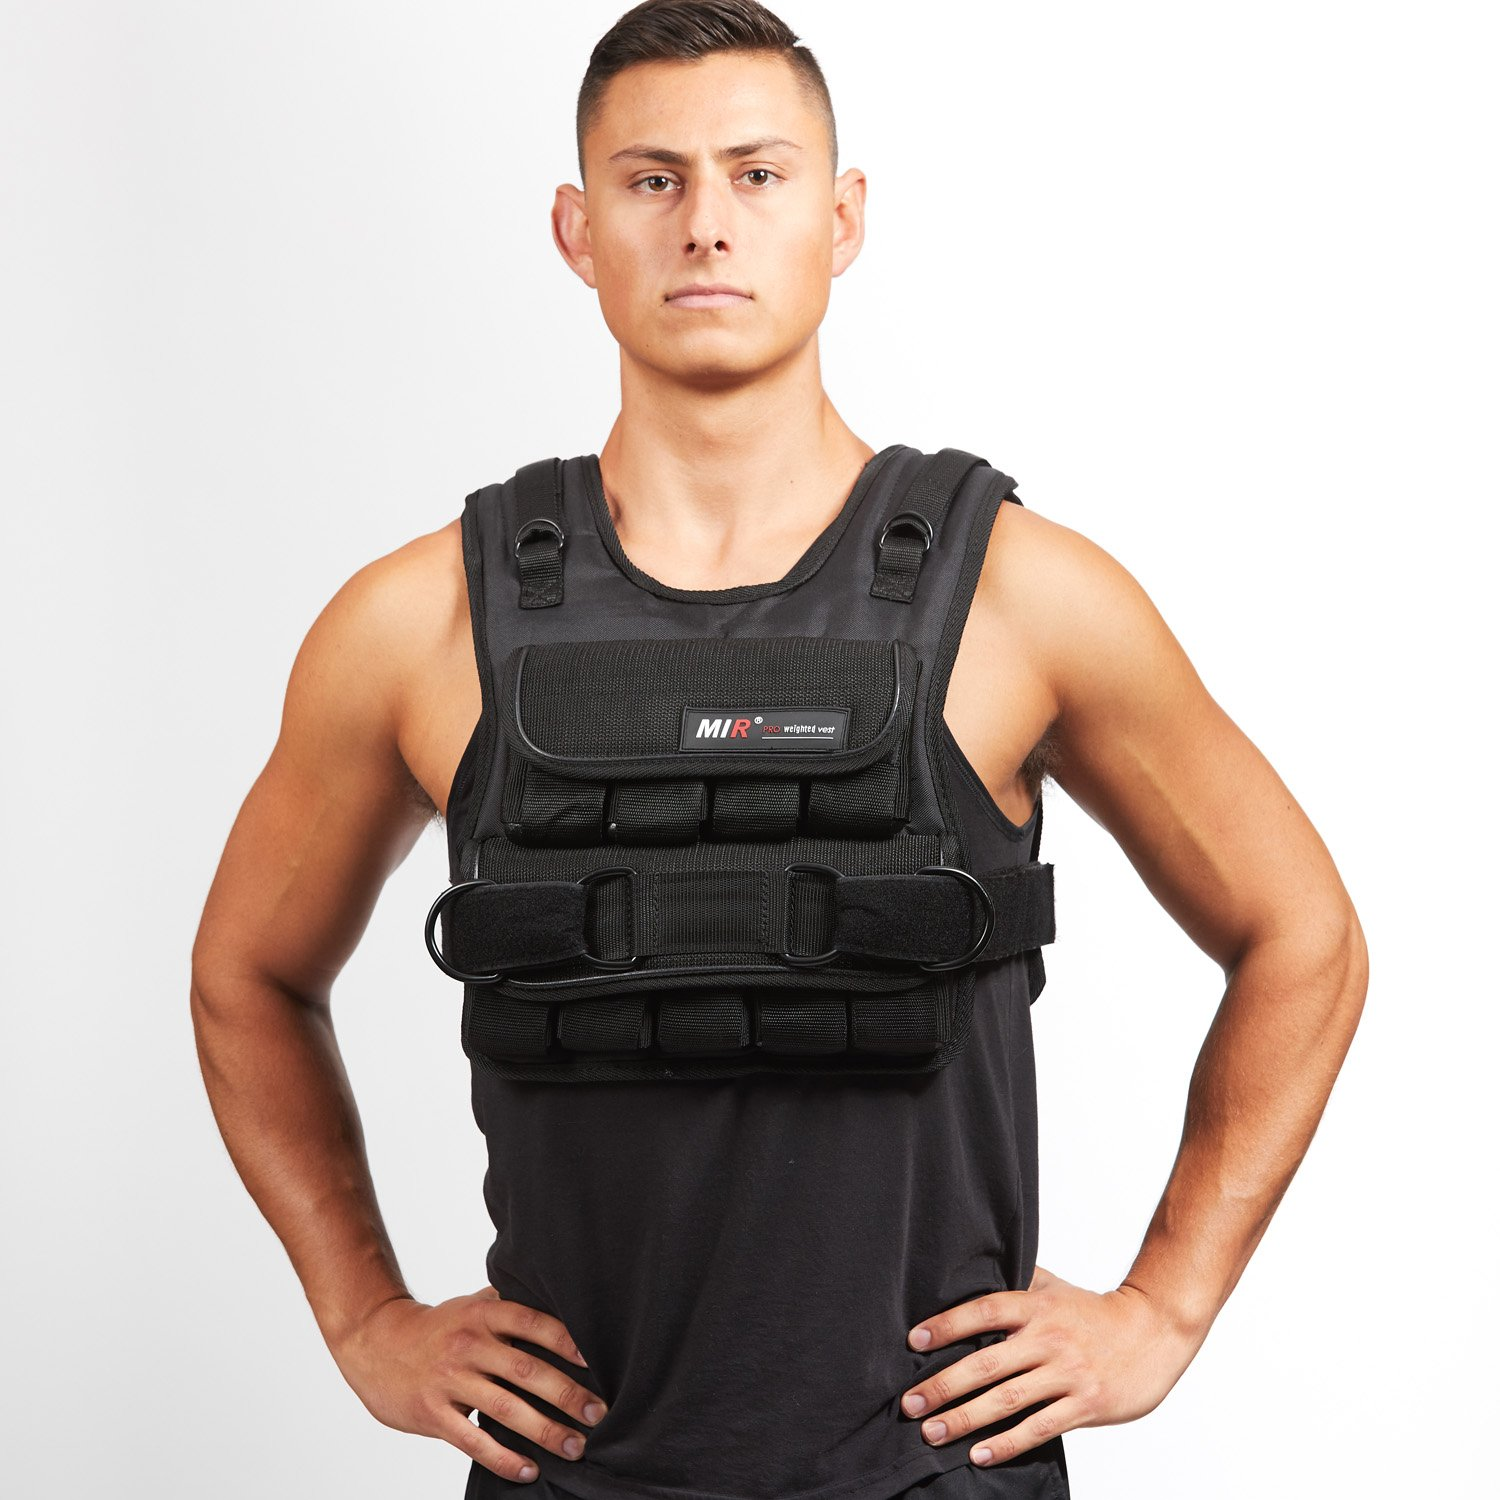 Mir 60LBS (SHORT STYLE) ADJUSTABLE WEIGHTED VEST MiR Weighted Vest Mir60nv